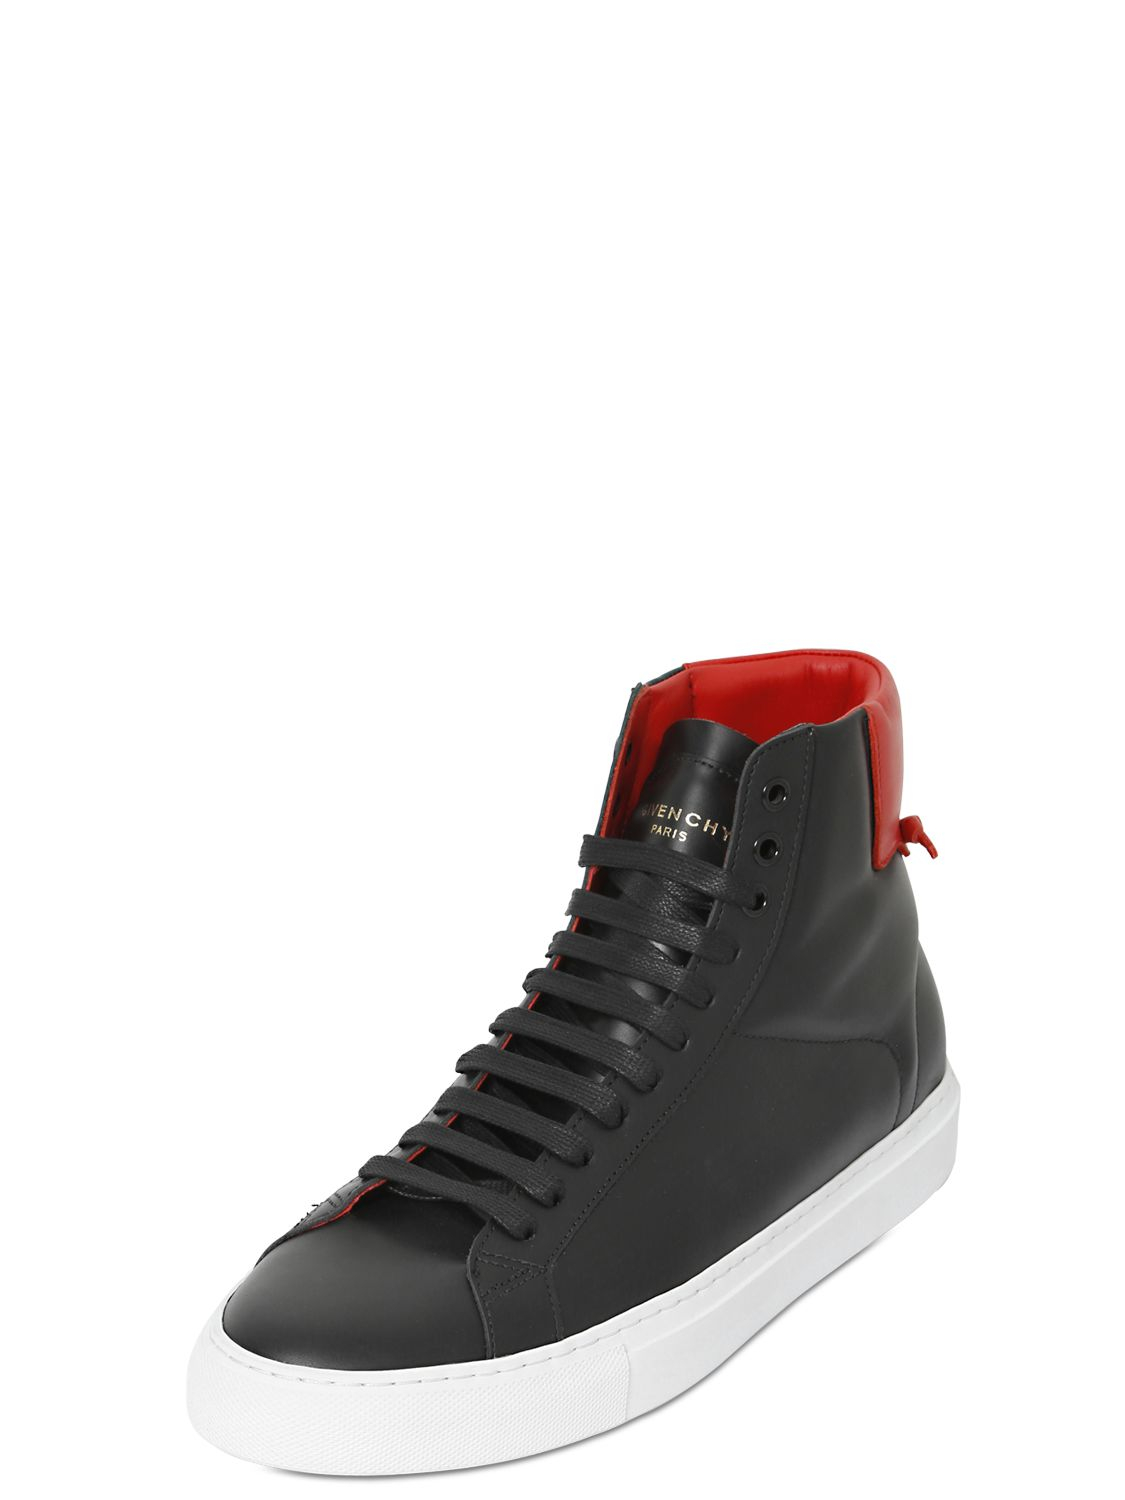 Givenchy Knots Leather High Top Sneakers In Black For Men